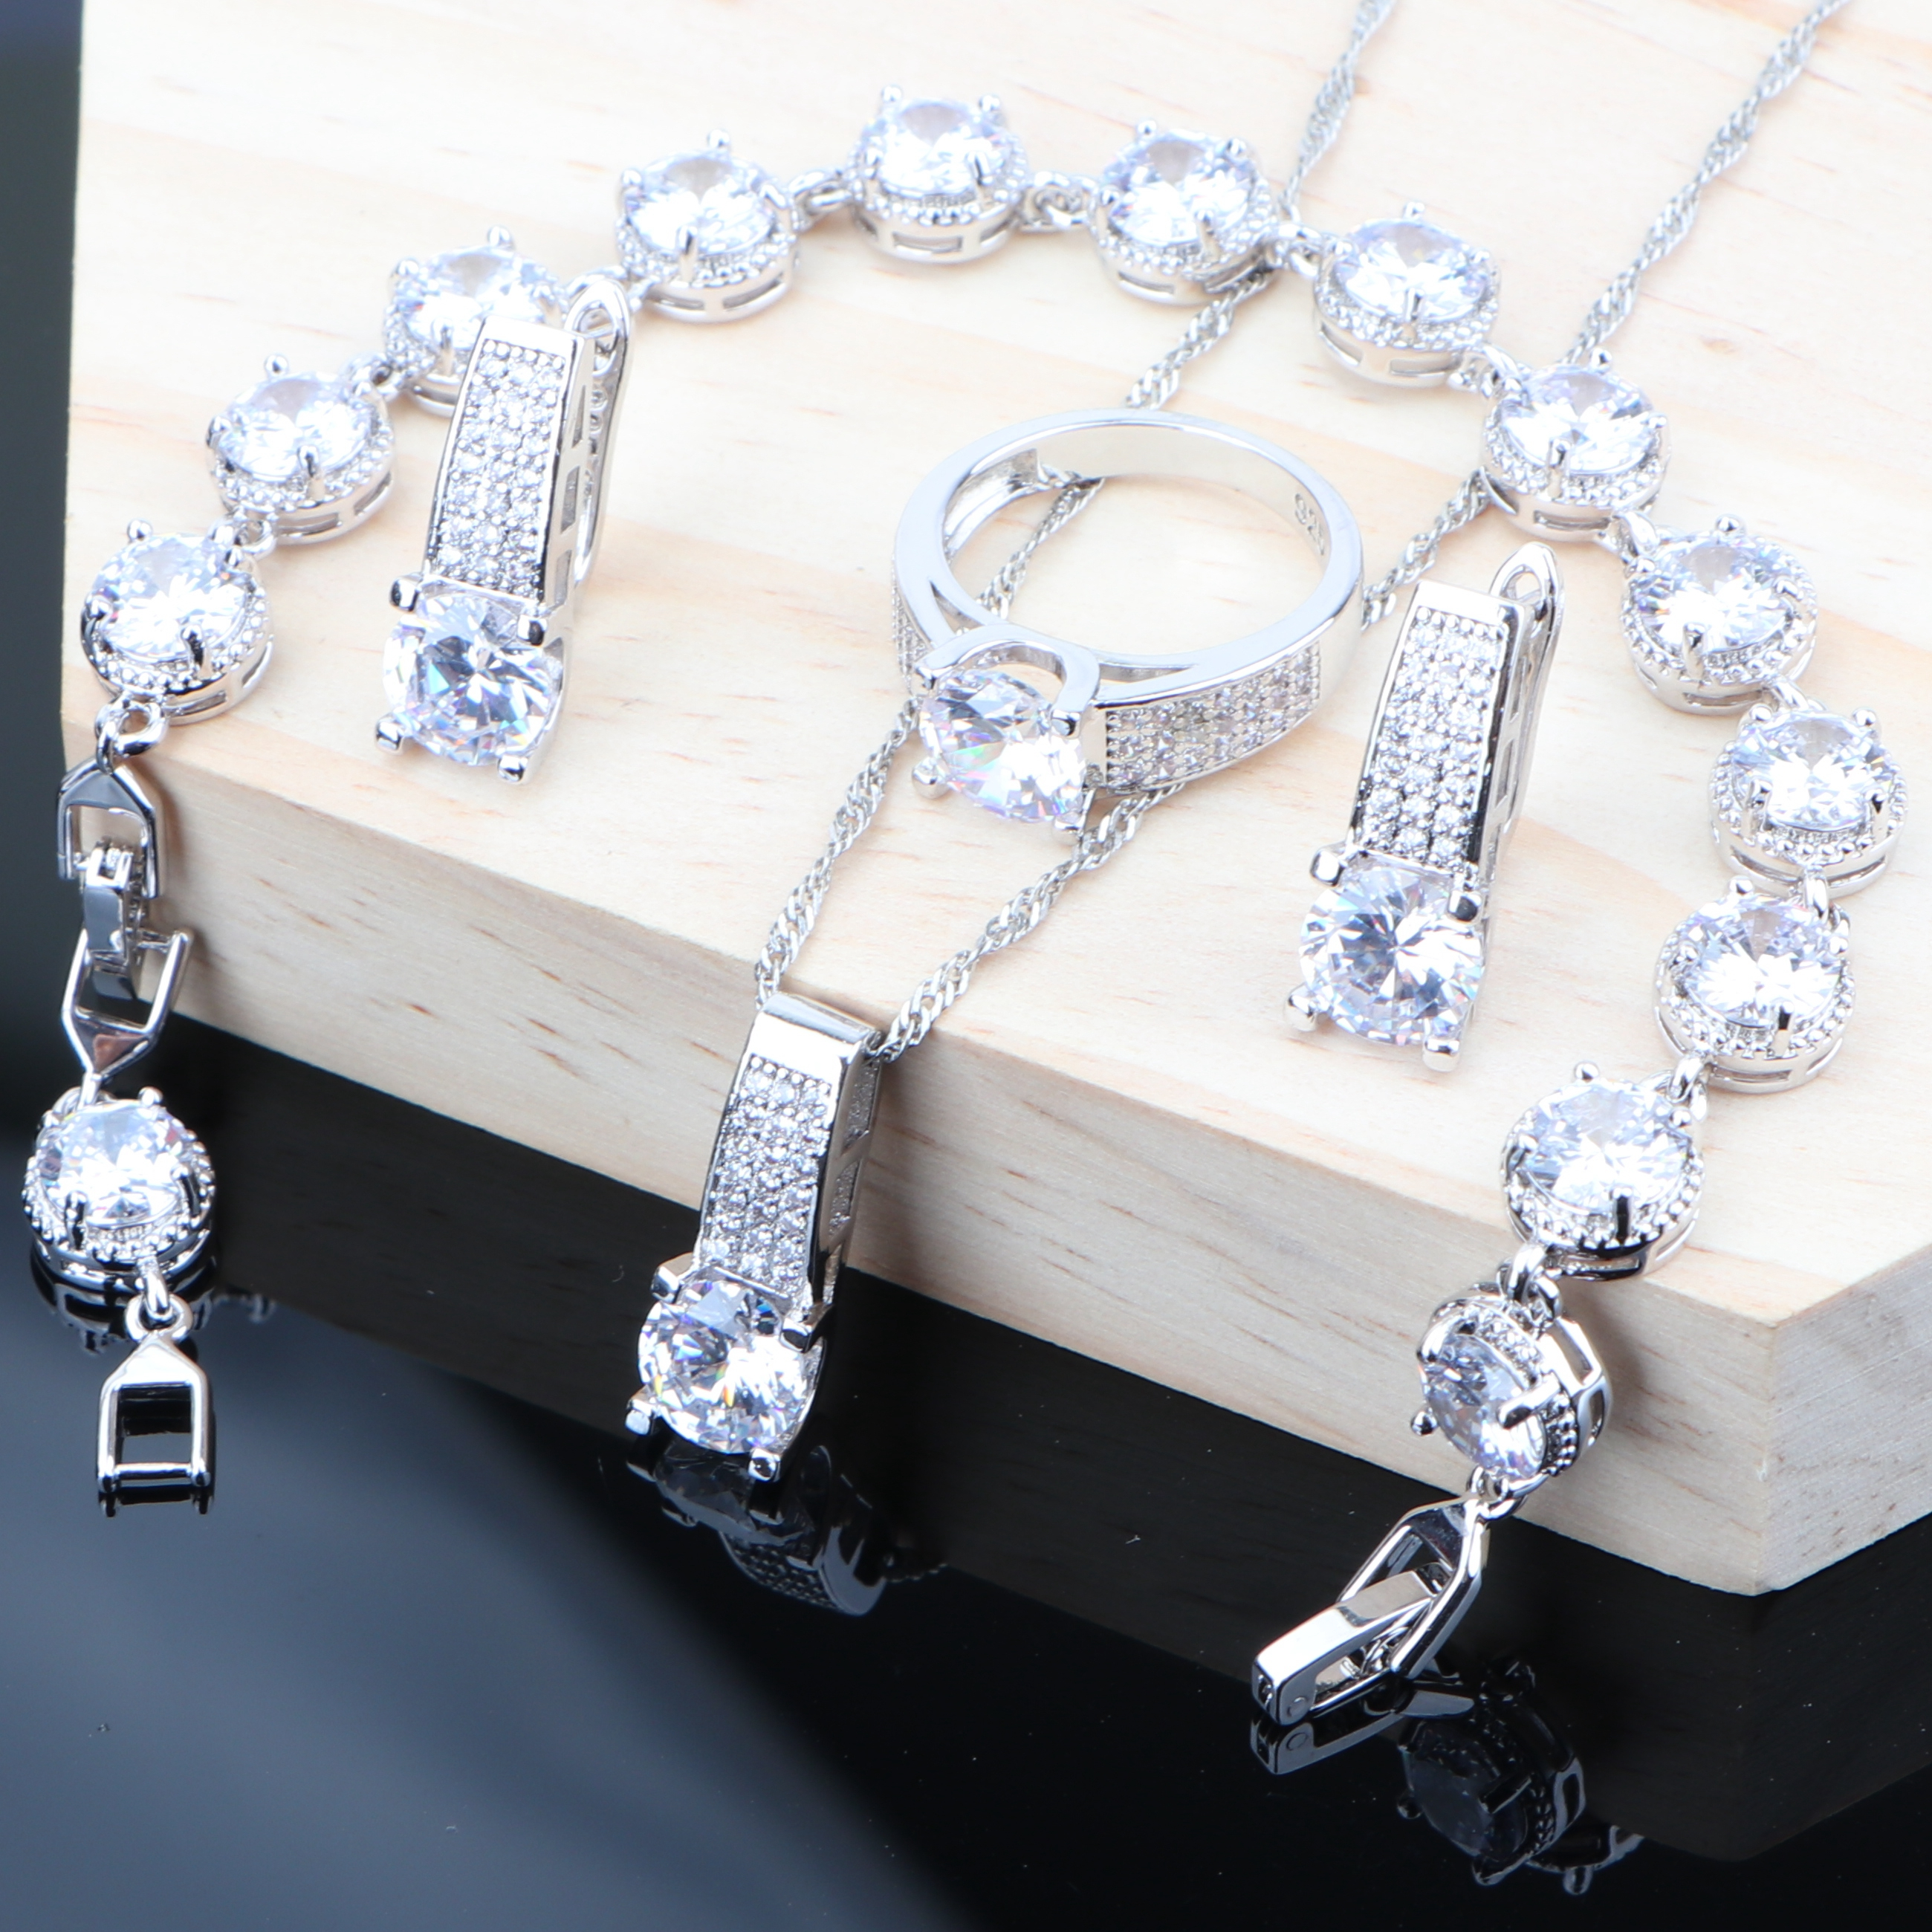 925 Silver White Cubic Zirconia Costume Jewelry Sets For Women Wedding Earrings Bracelet Bridal Jewelry Ring Necklace Sets